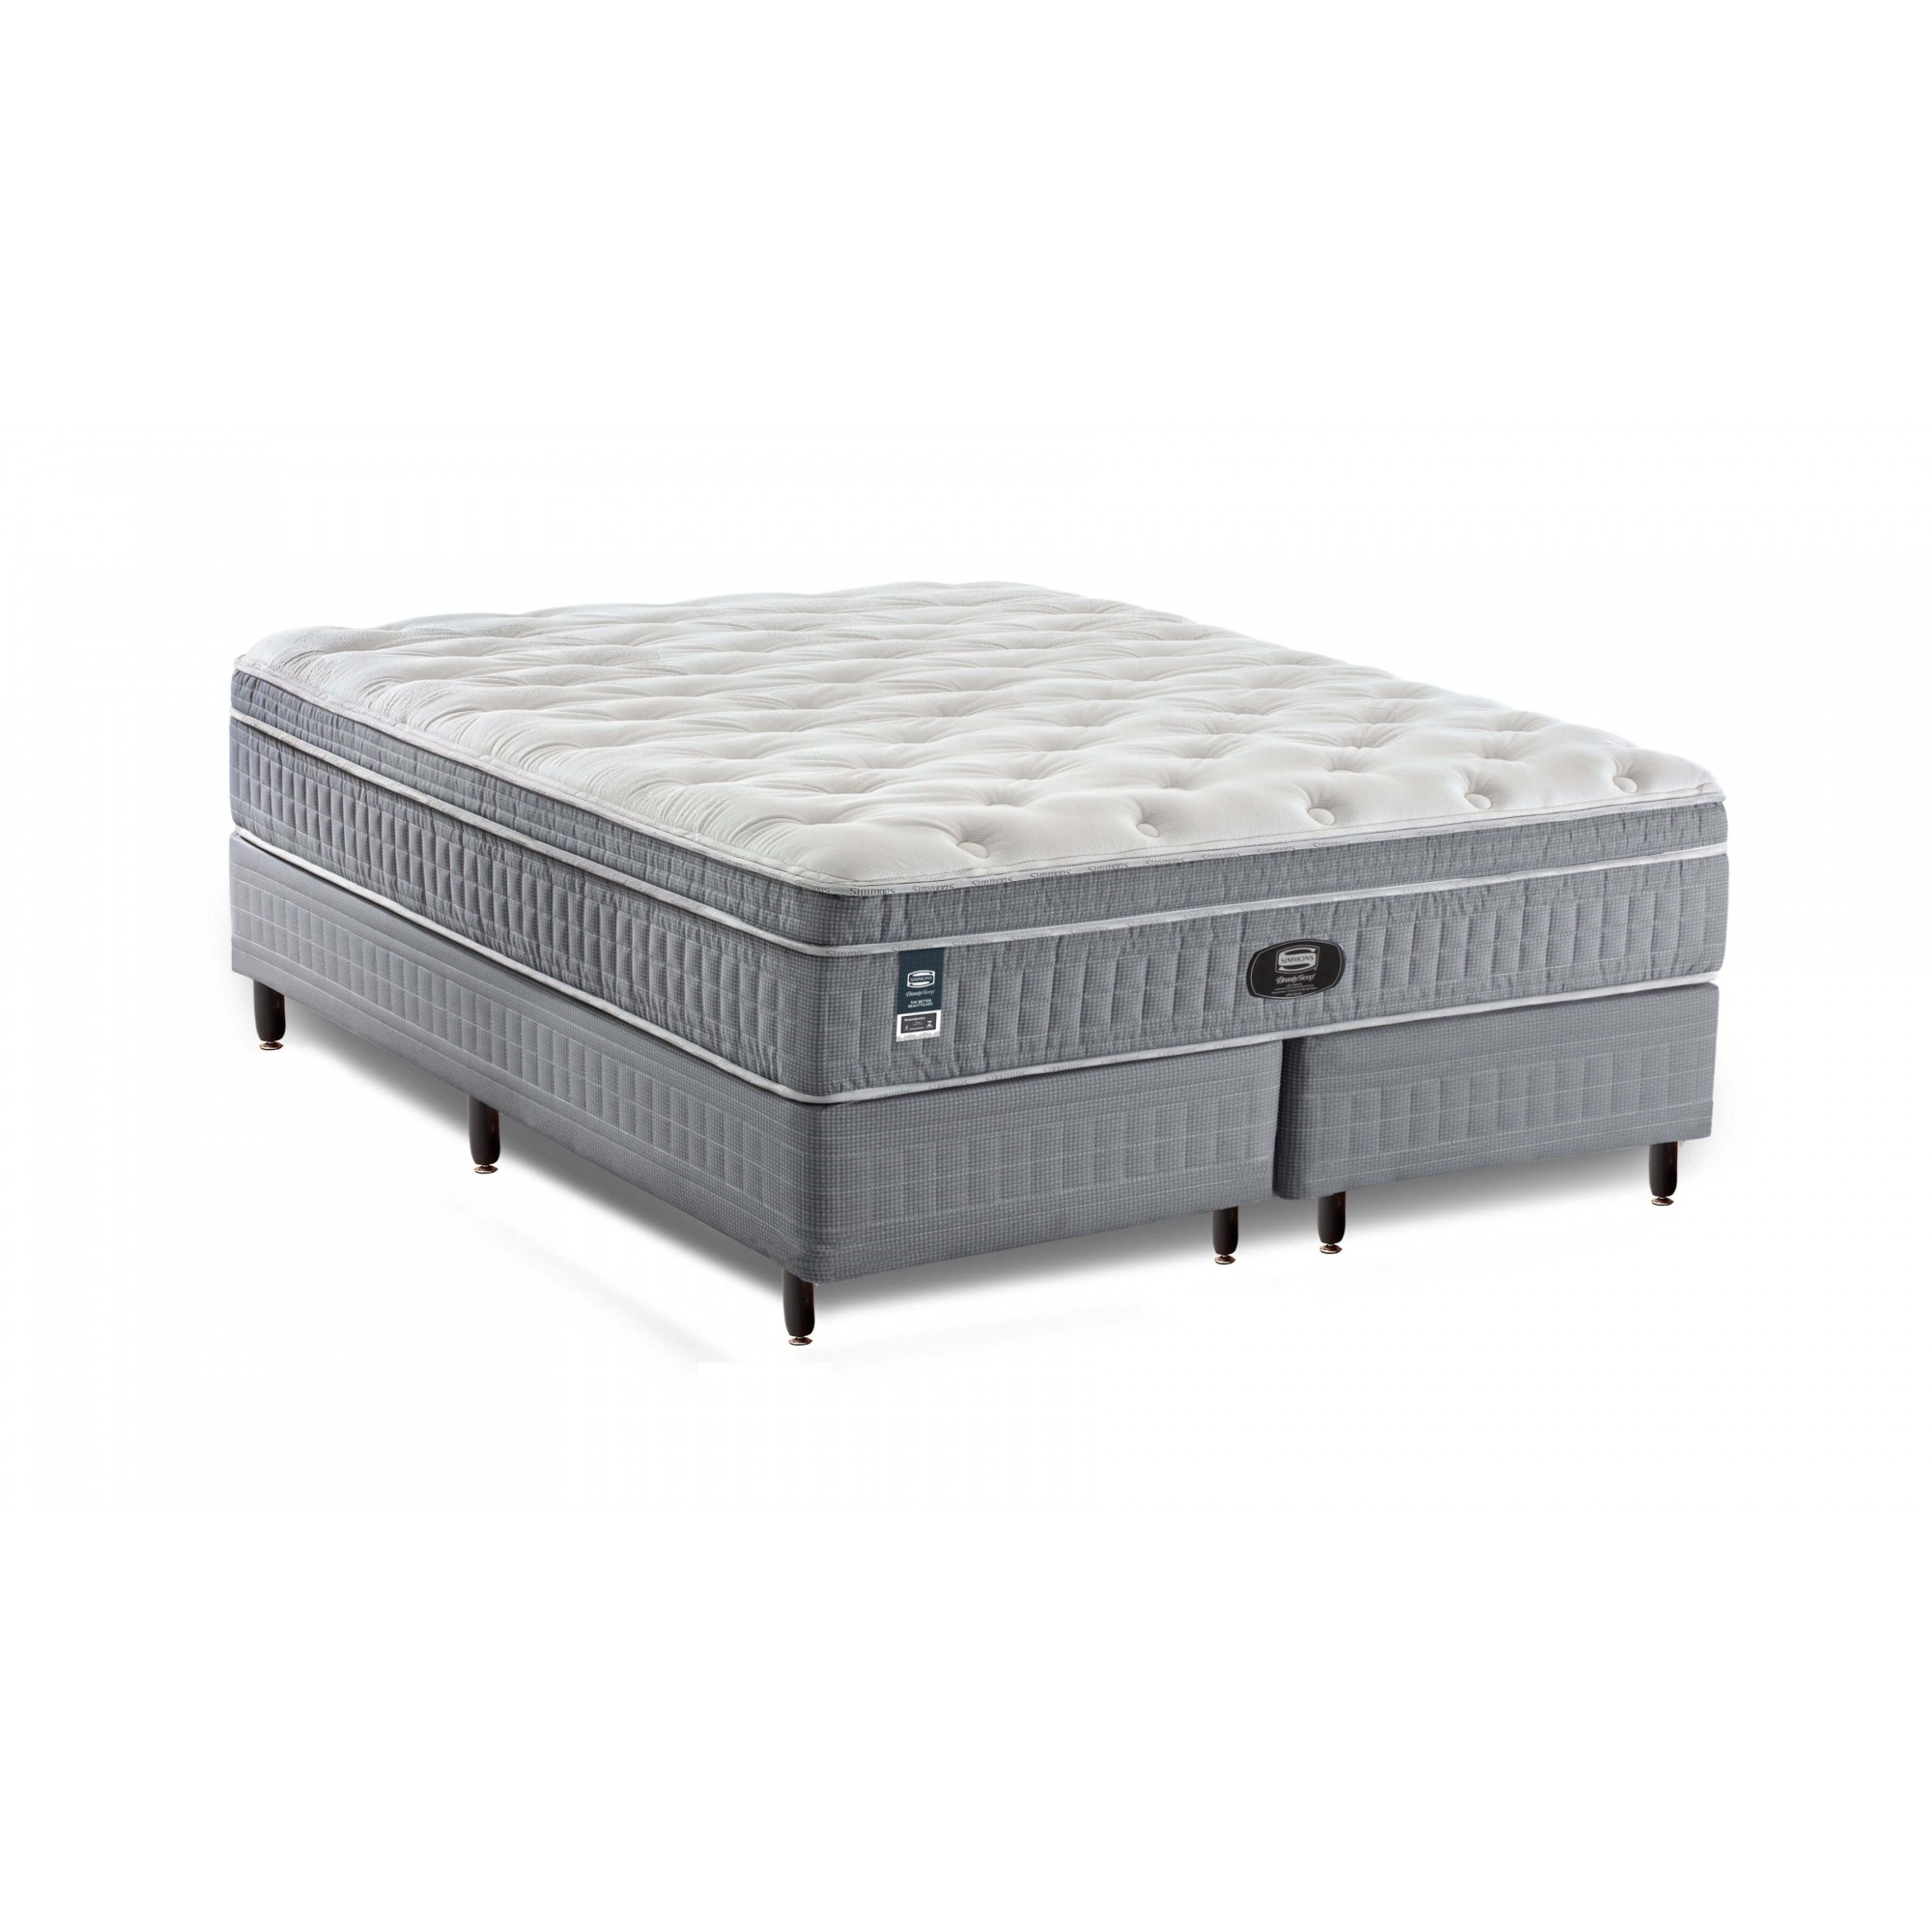 Cama Box Com Colchão Queen Size Finesse Beautysleep  Simmons Molas Ensacadas